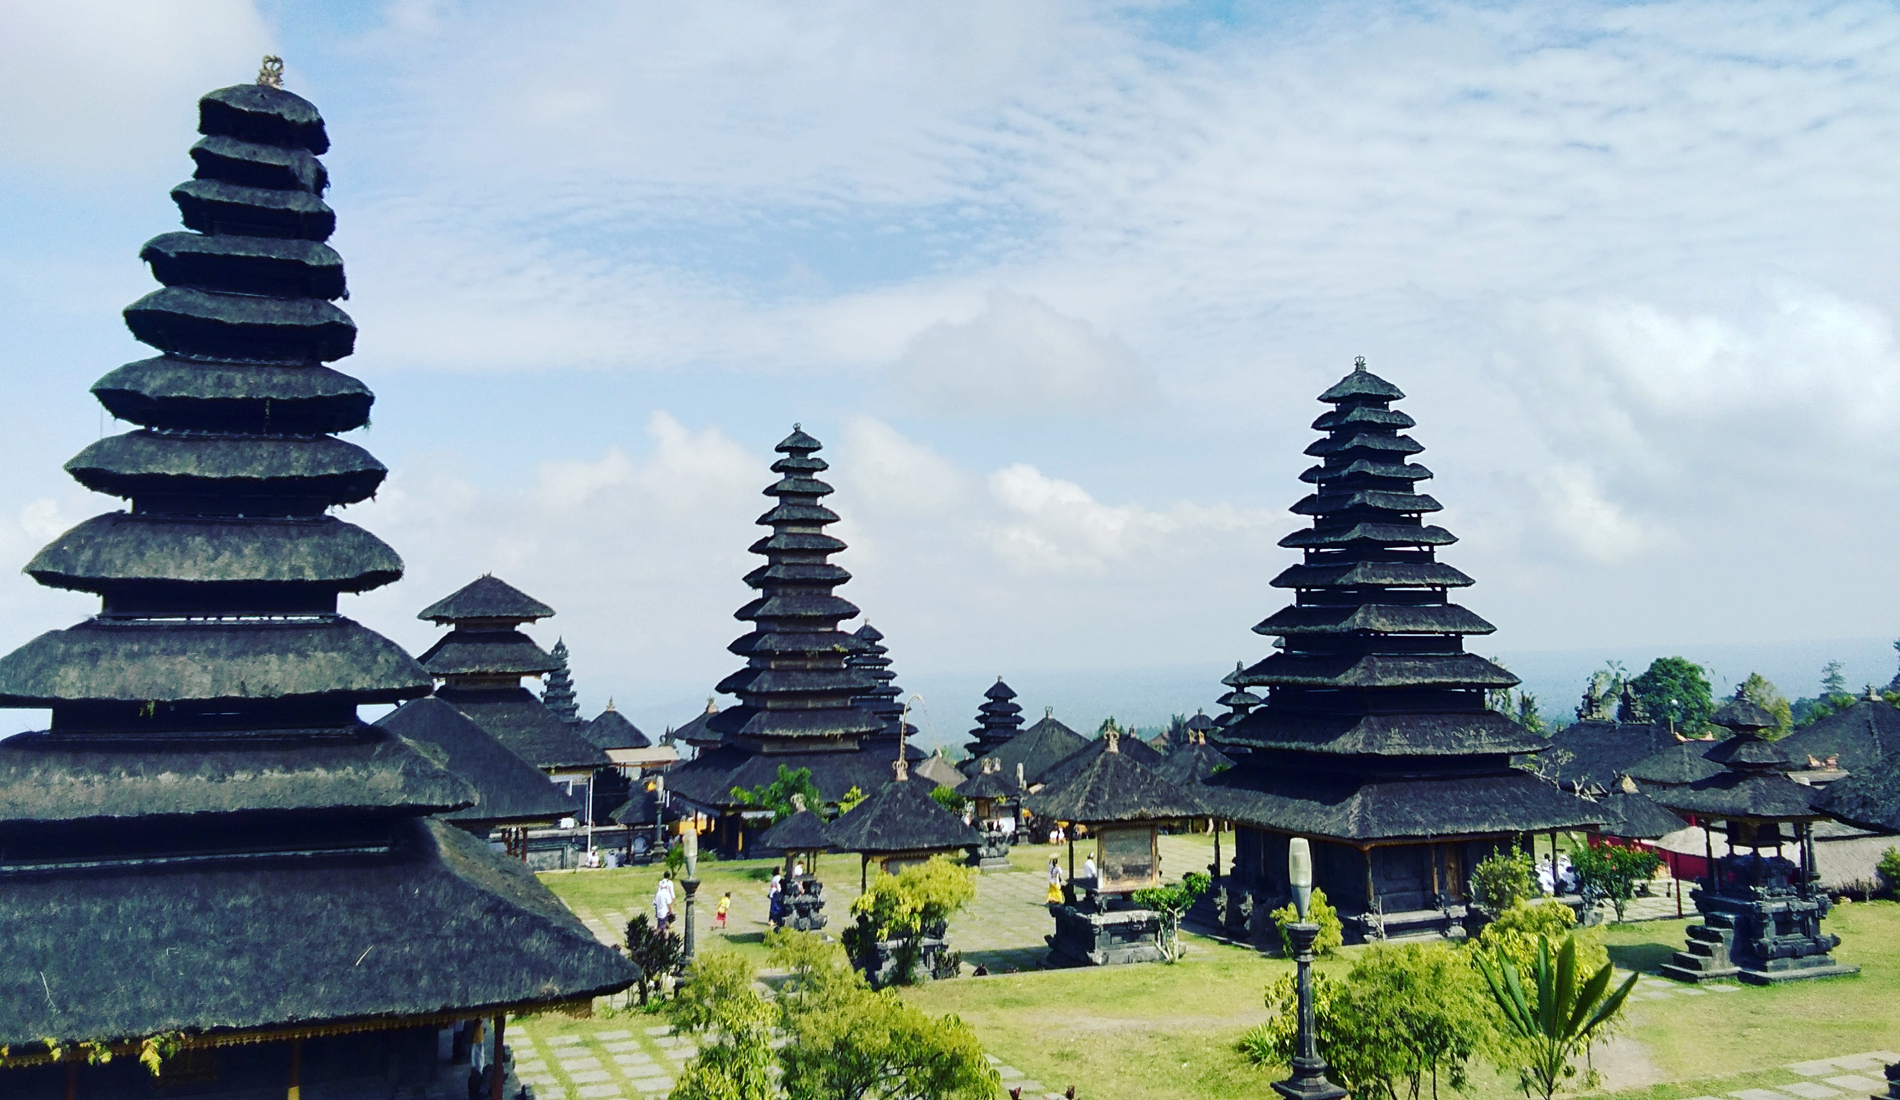 Besakih Temple Bali - Things To Do in Bali Tours Activities